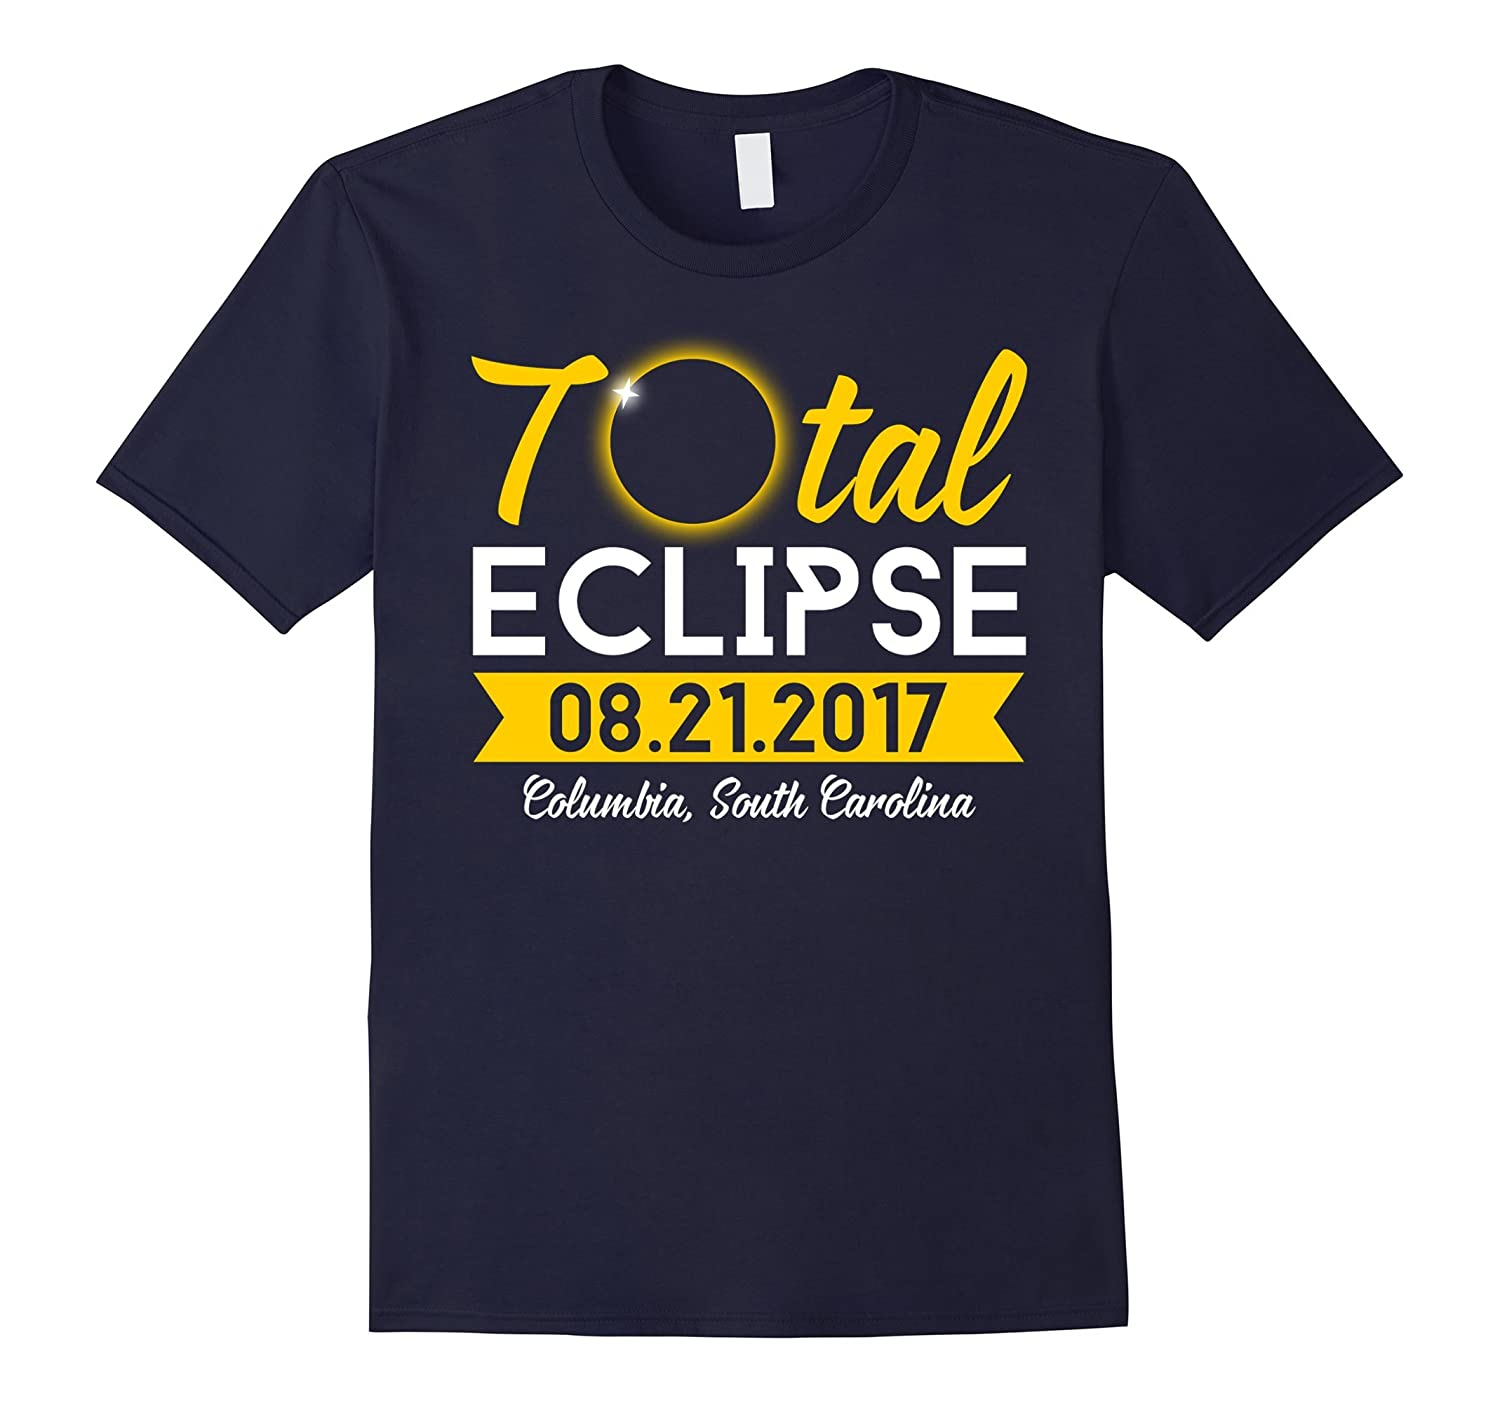 Total Eclipse Can Be Seen In Columbia South Carolina T-shirt-Vaci